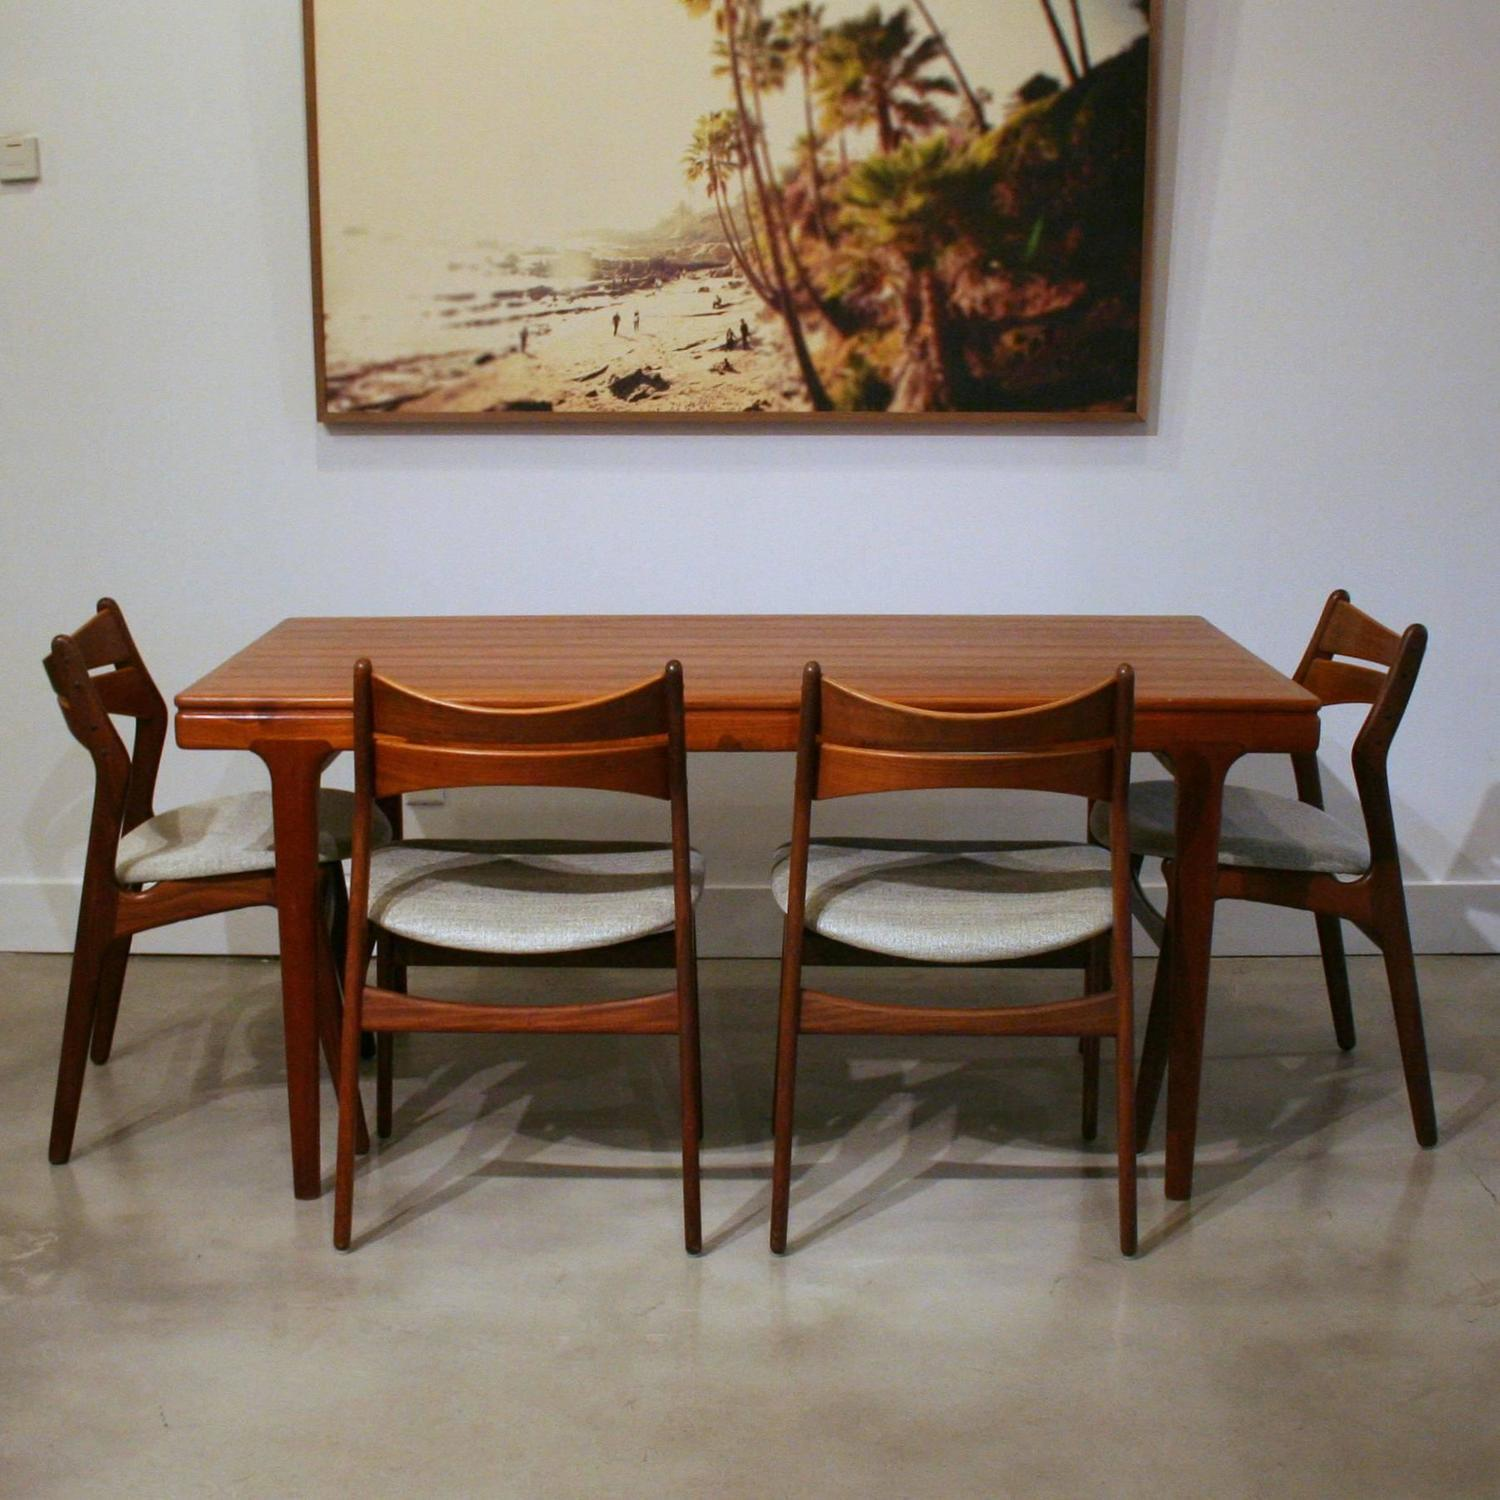 Vintage danish teak dining table at 1stdibs for Dining room tables vancouver bc